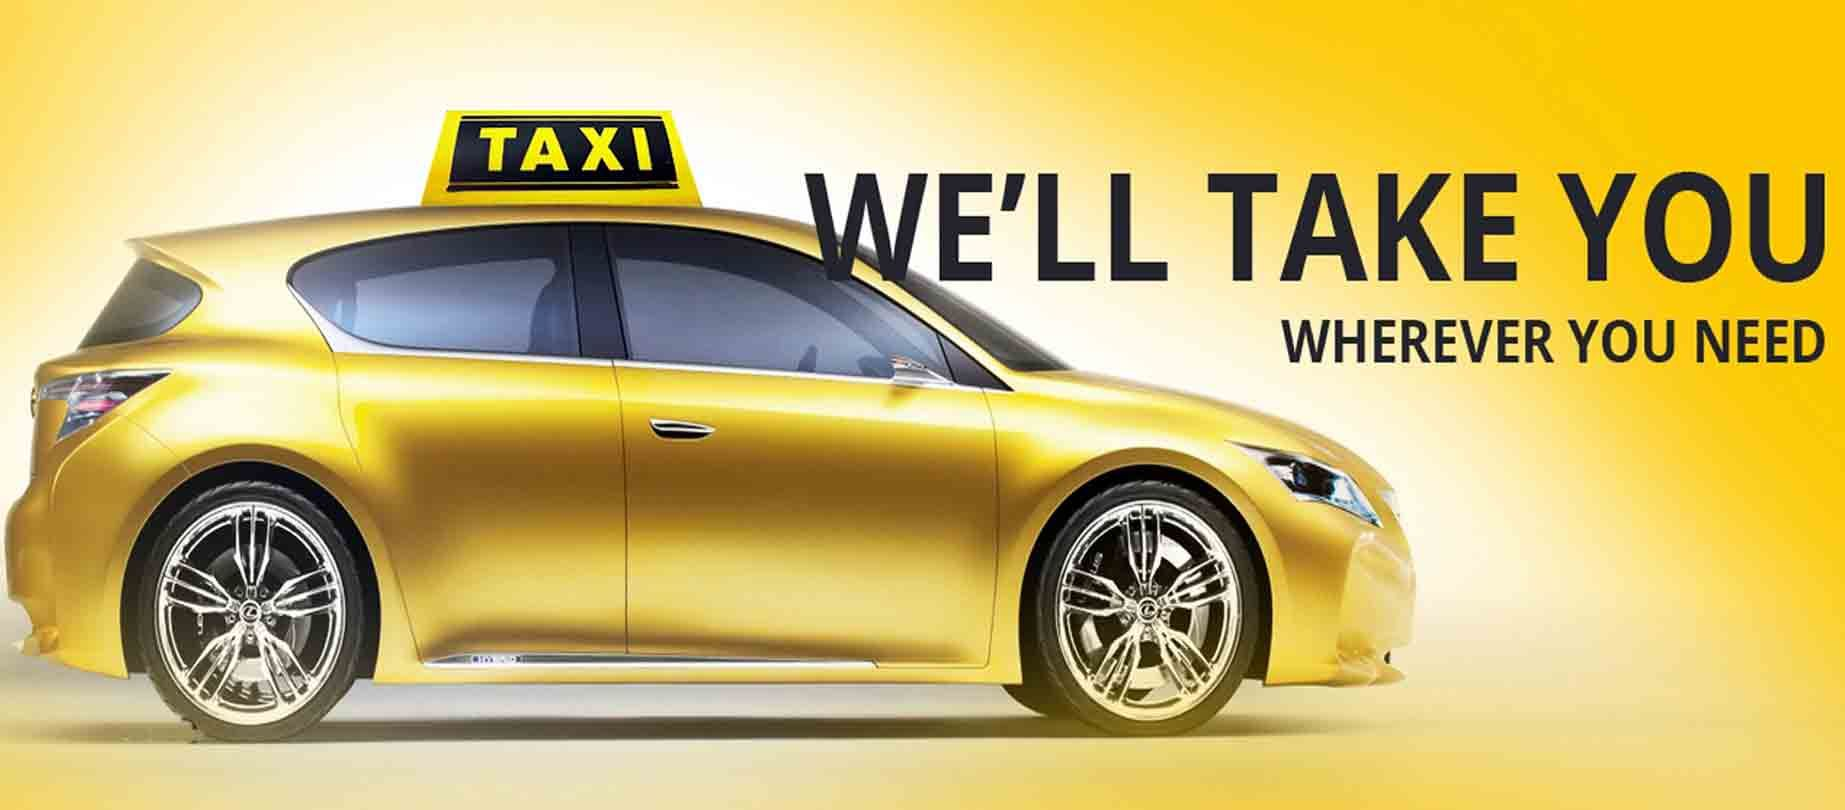 Why Hiring An Airport Taxi Service For Your One Way Destination Is A Good Idea Taxi Service Taxi Cab Taxi